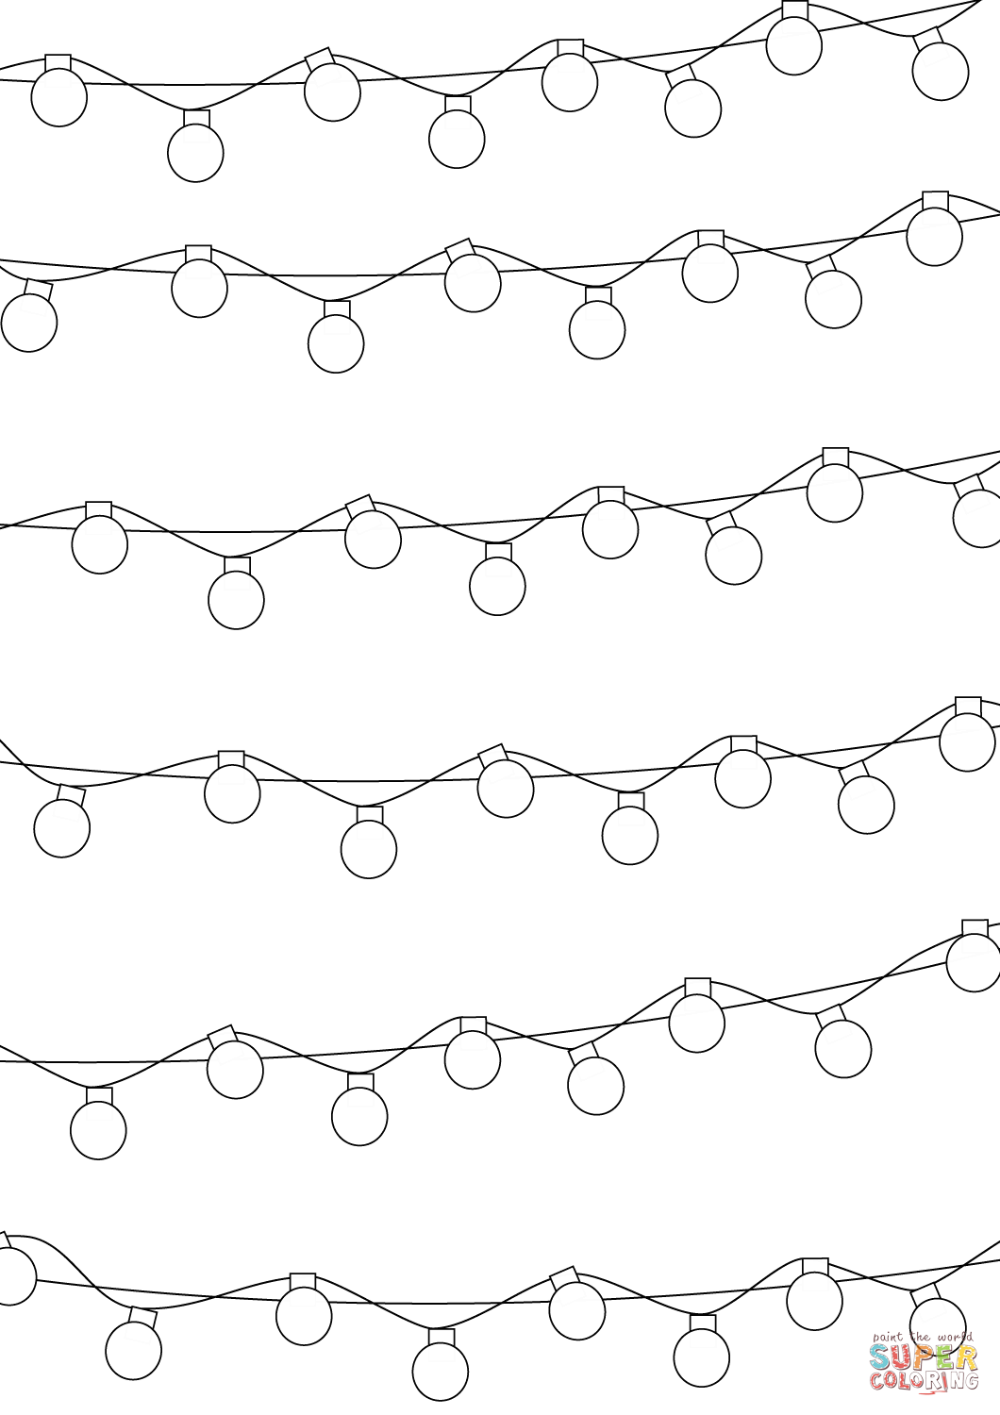 Christmas Lights Pattern Coloring Page Free Printable Coloring Pages Pattern Coloring Pages Printables Free Kids Coloring Christmas Tree Coloring Page